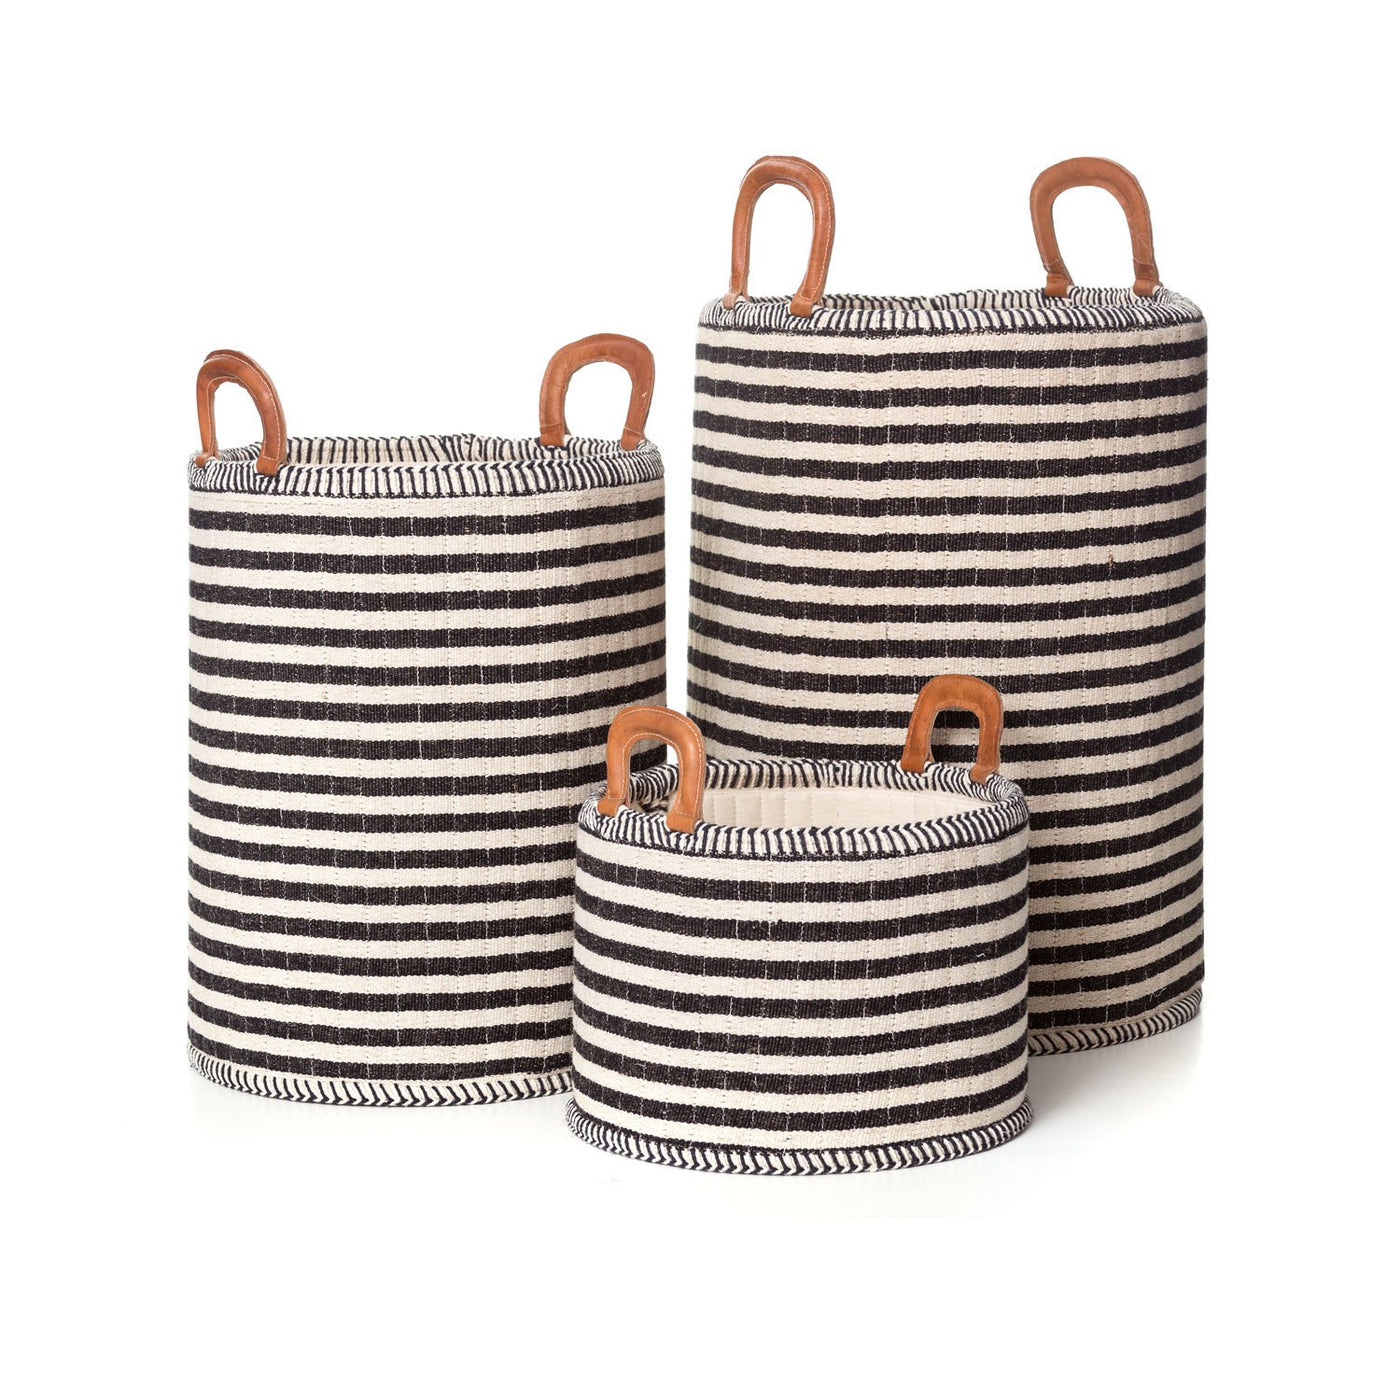 Mozambique Storage Basket - Medium